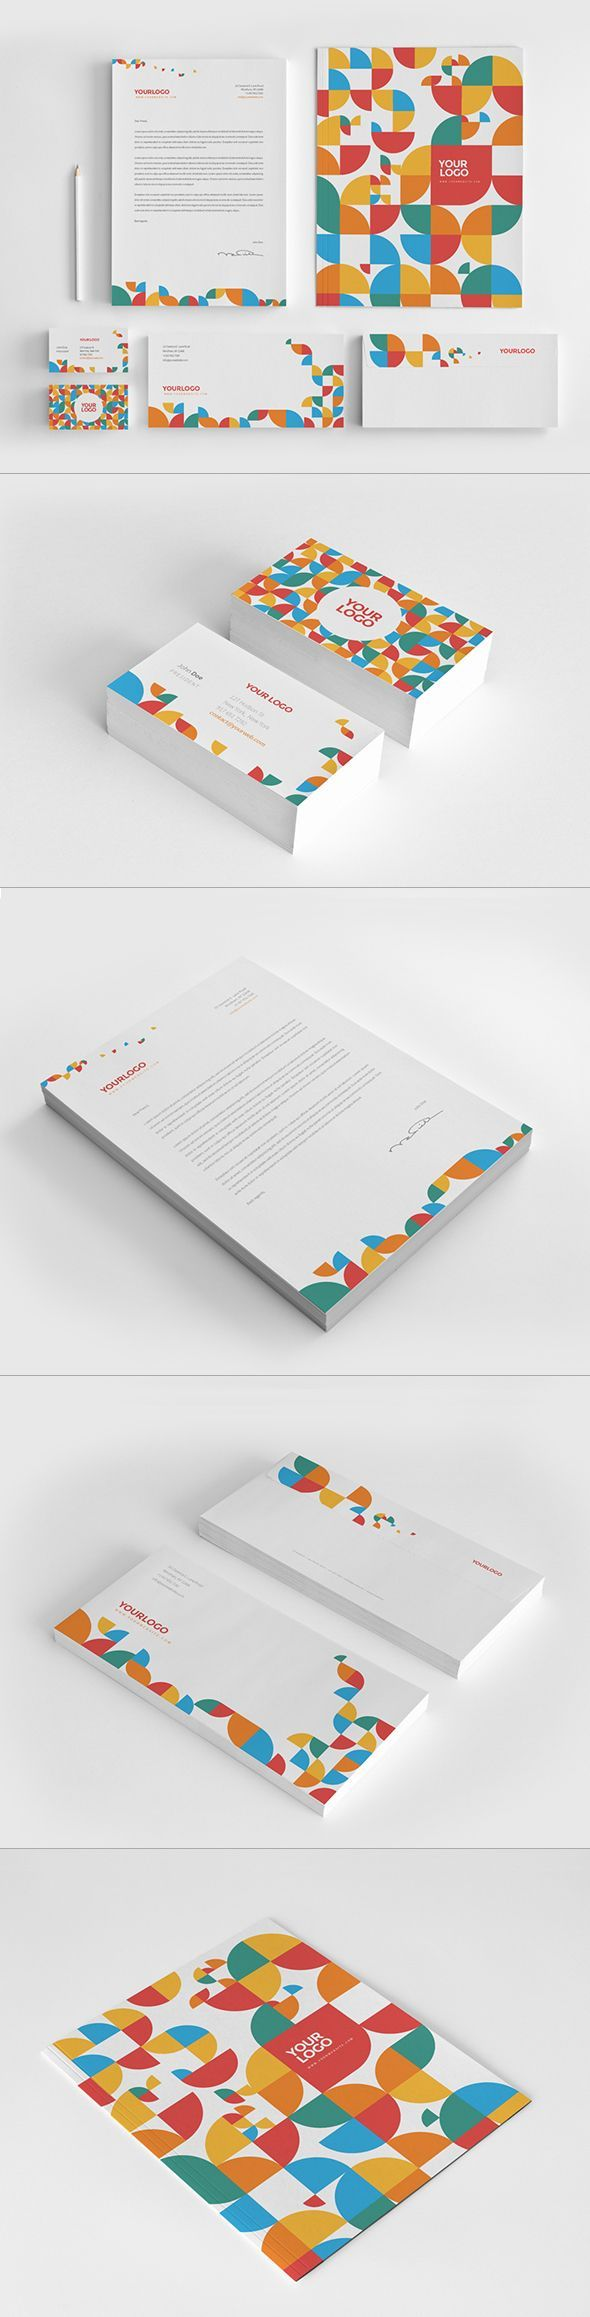 Colorful Circle Pattern Stationery by Abra Design, via Behance